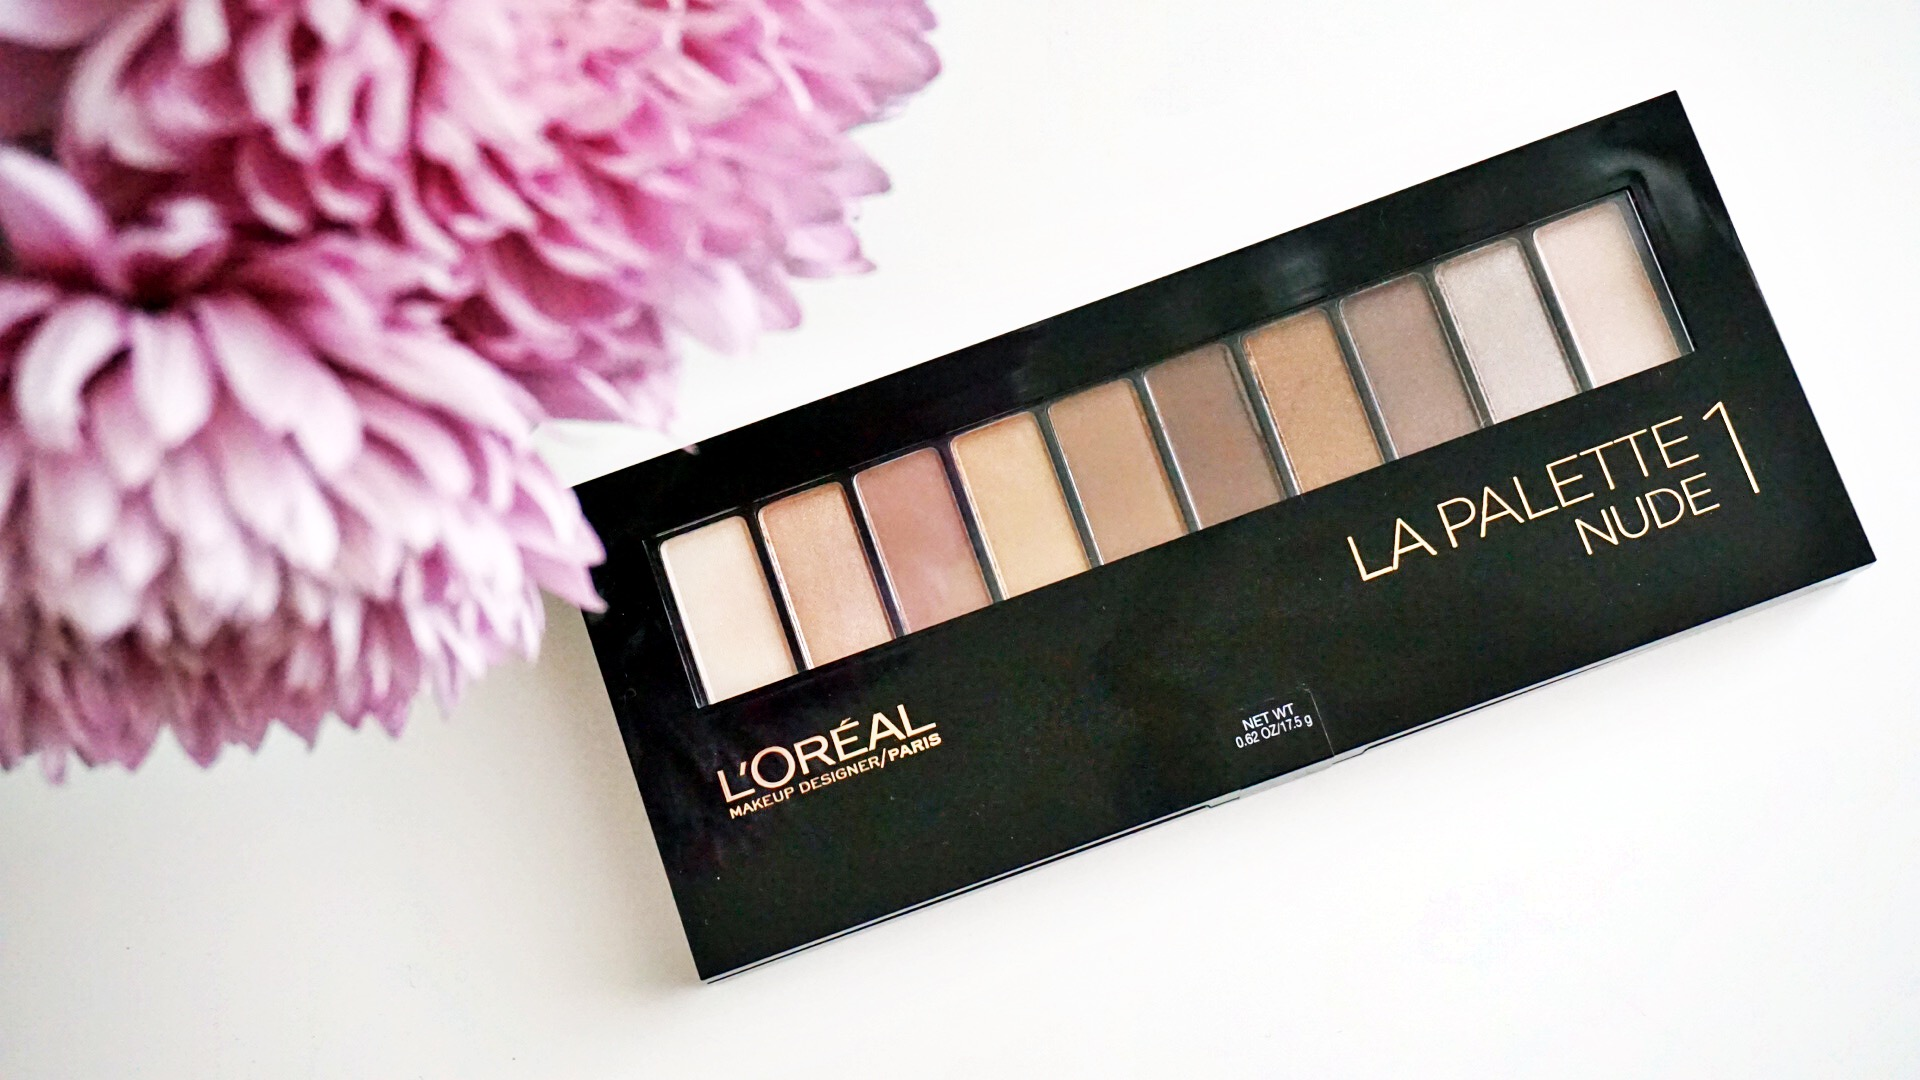 LOreal La Palette Nude 1 and 2 Review and Swatches